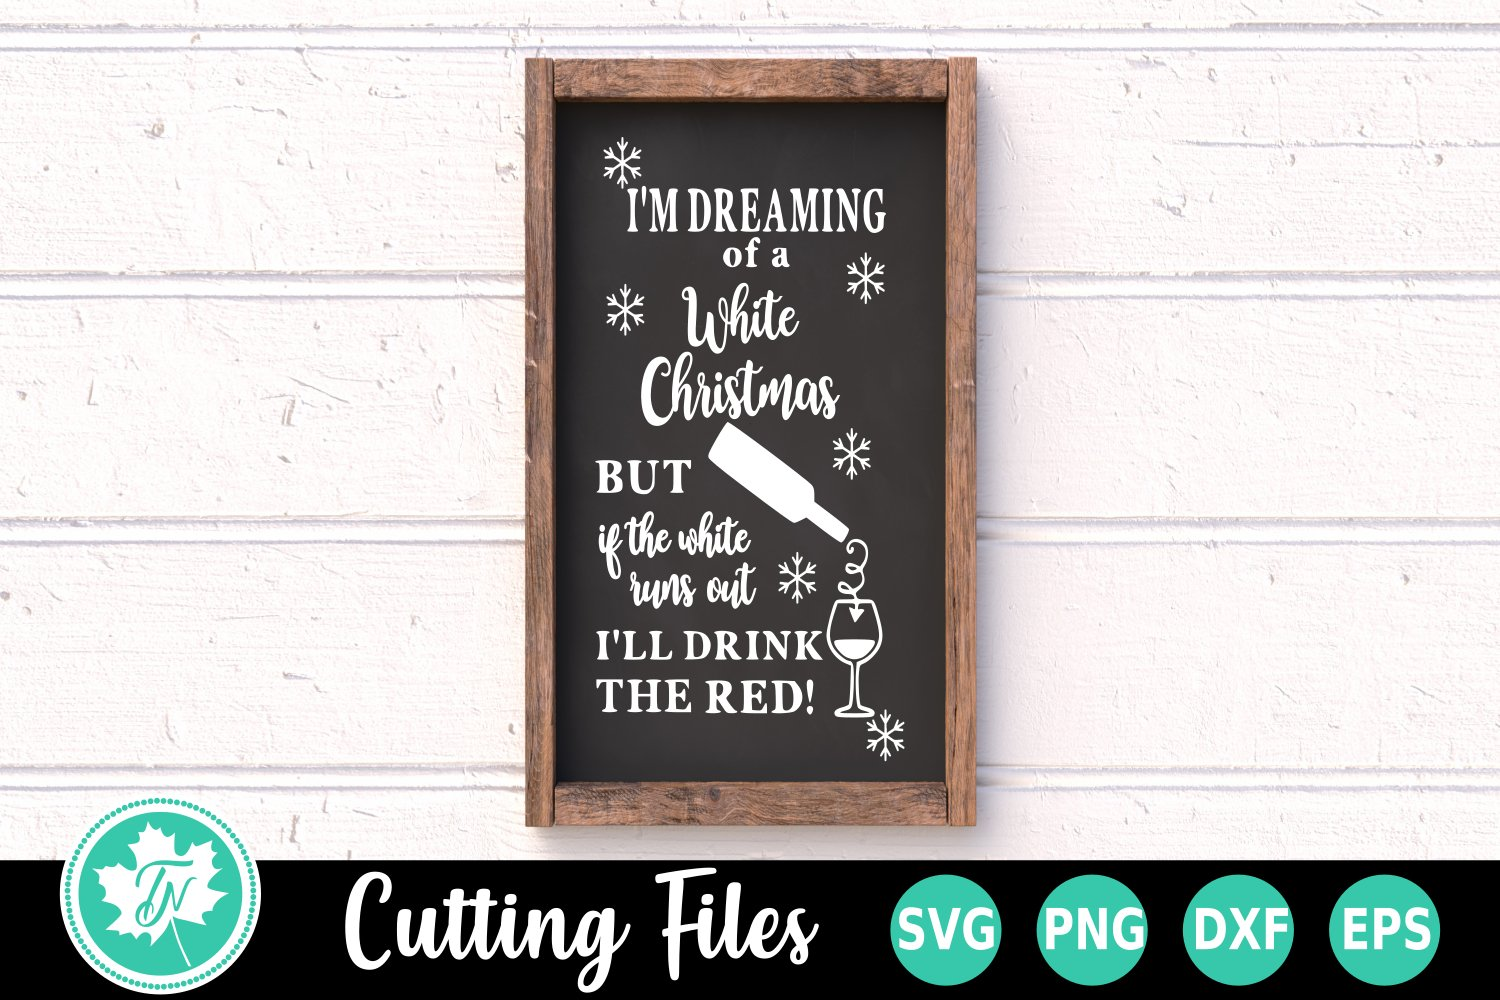 jpg dxf White Christmas SVG Wine SVG png Run of of White svg Commercial Use svg Drink the Red svg Red Wine SVG White Wine svg